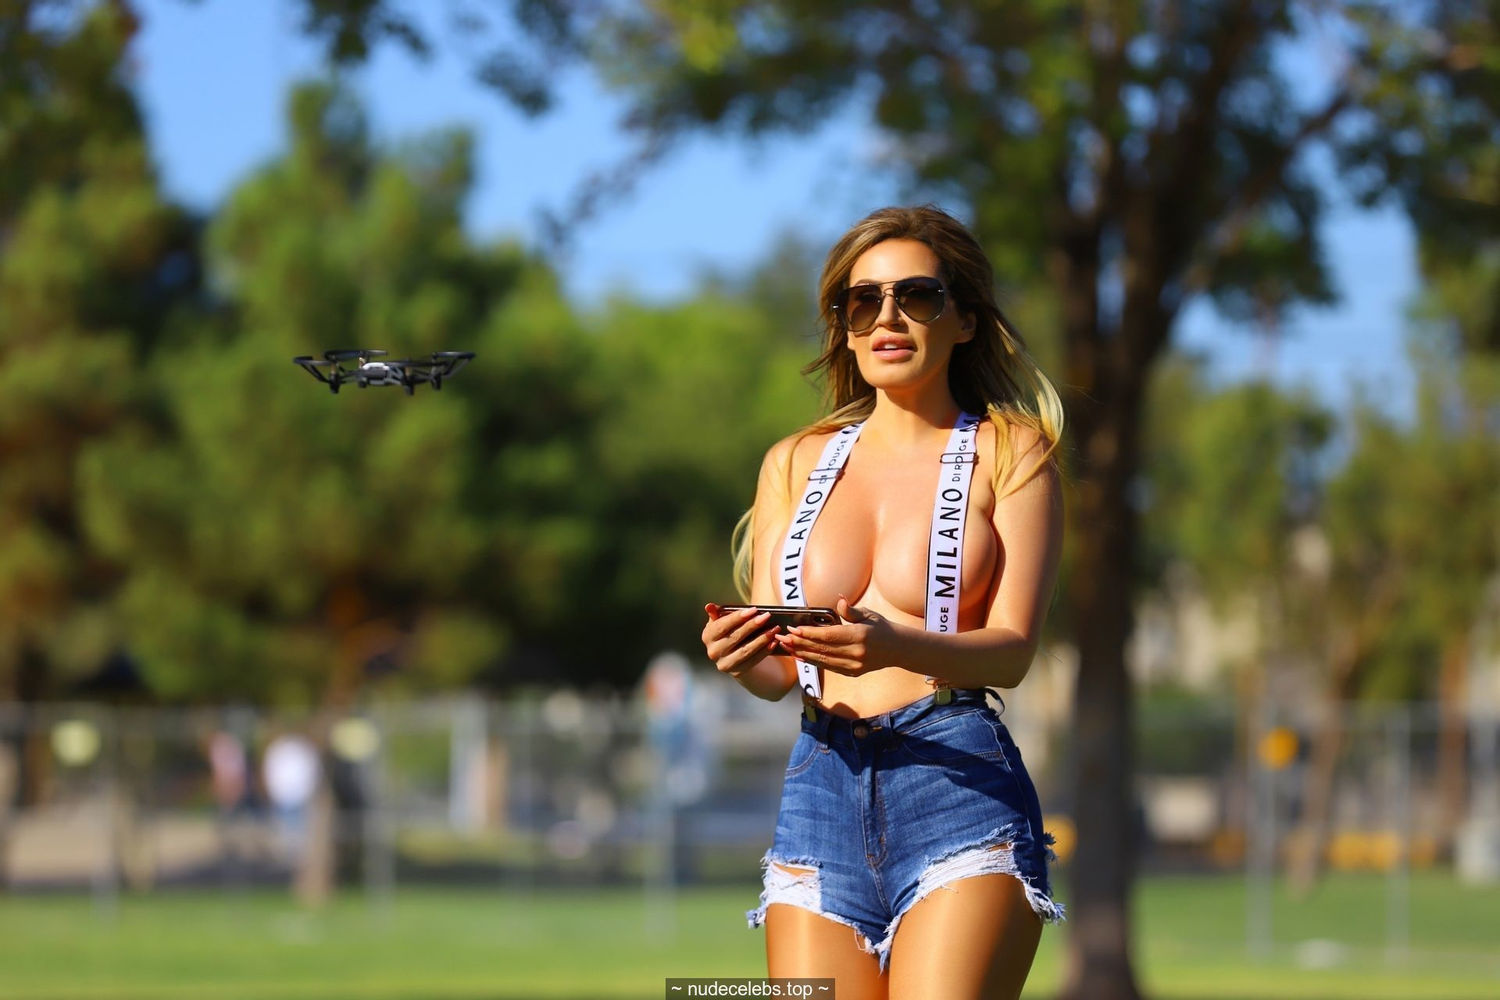 Busty Ana Braga almost topless with quadrocopter